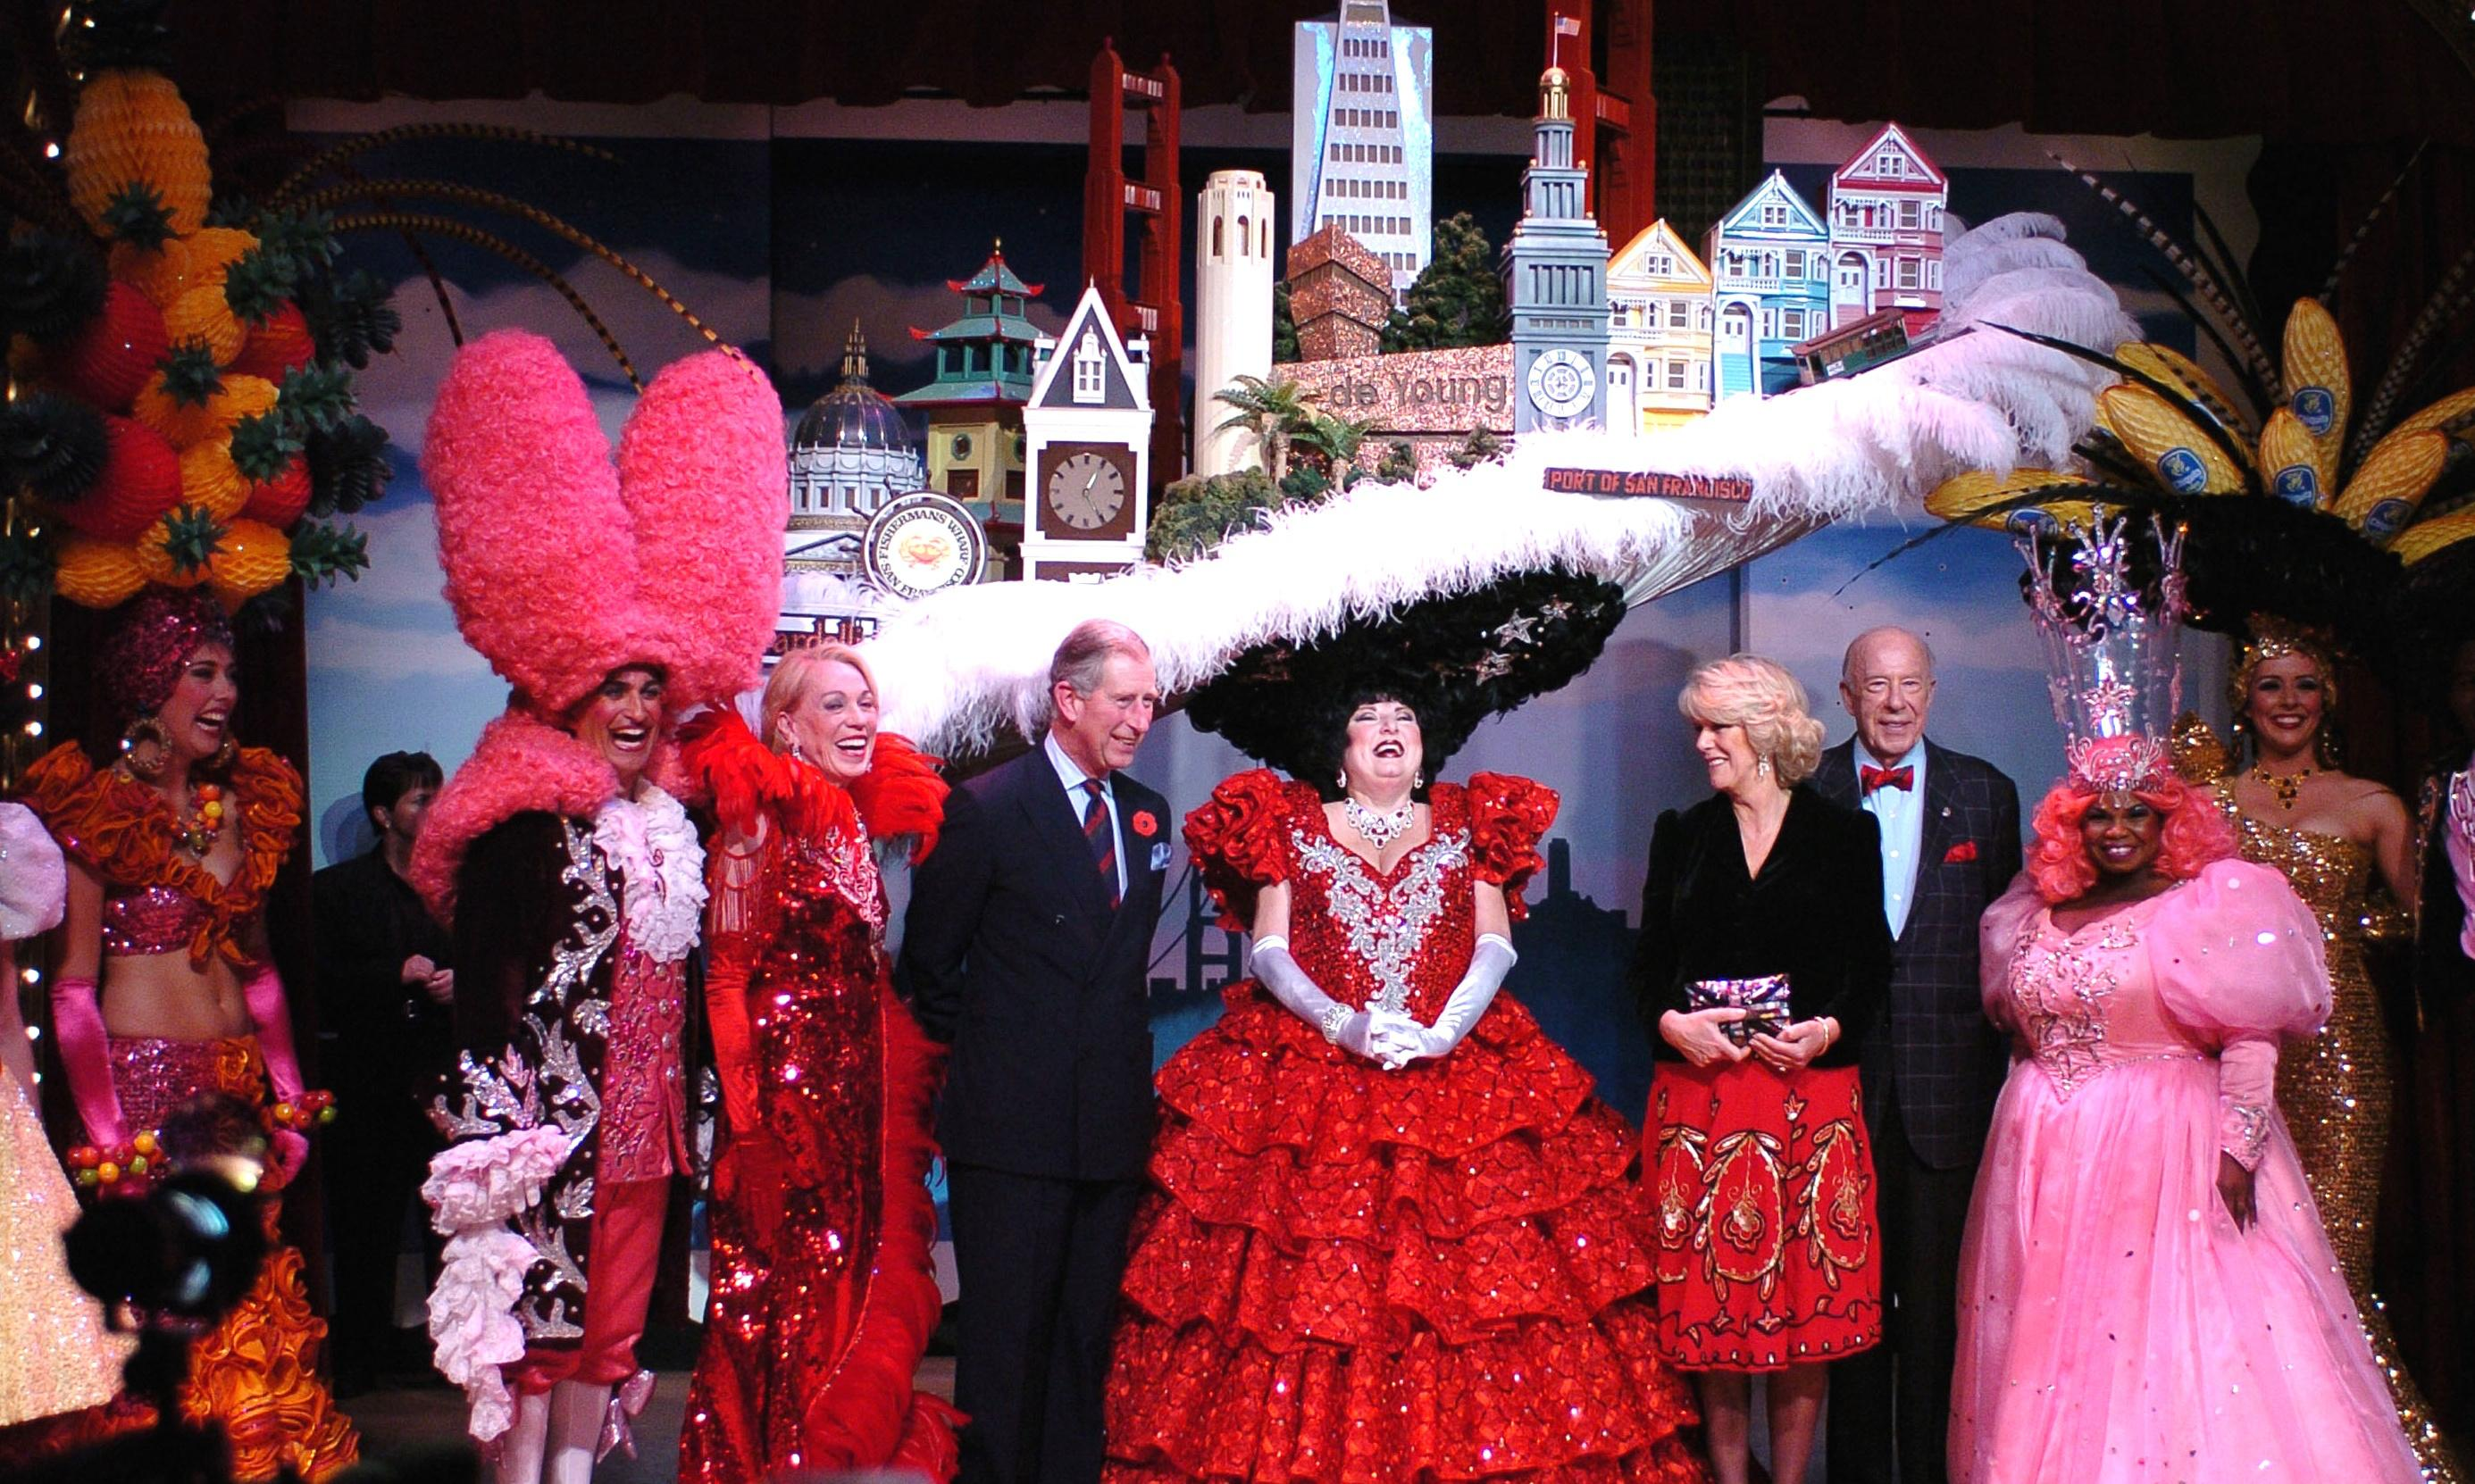 Beach Blanket Babylon: world-famous San Francisco show closes its doors after record 45-year run